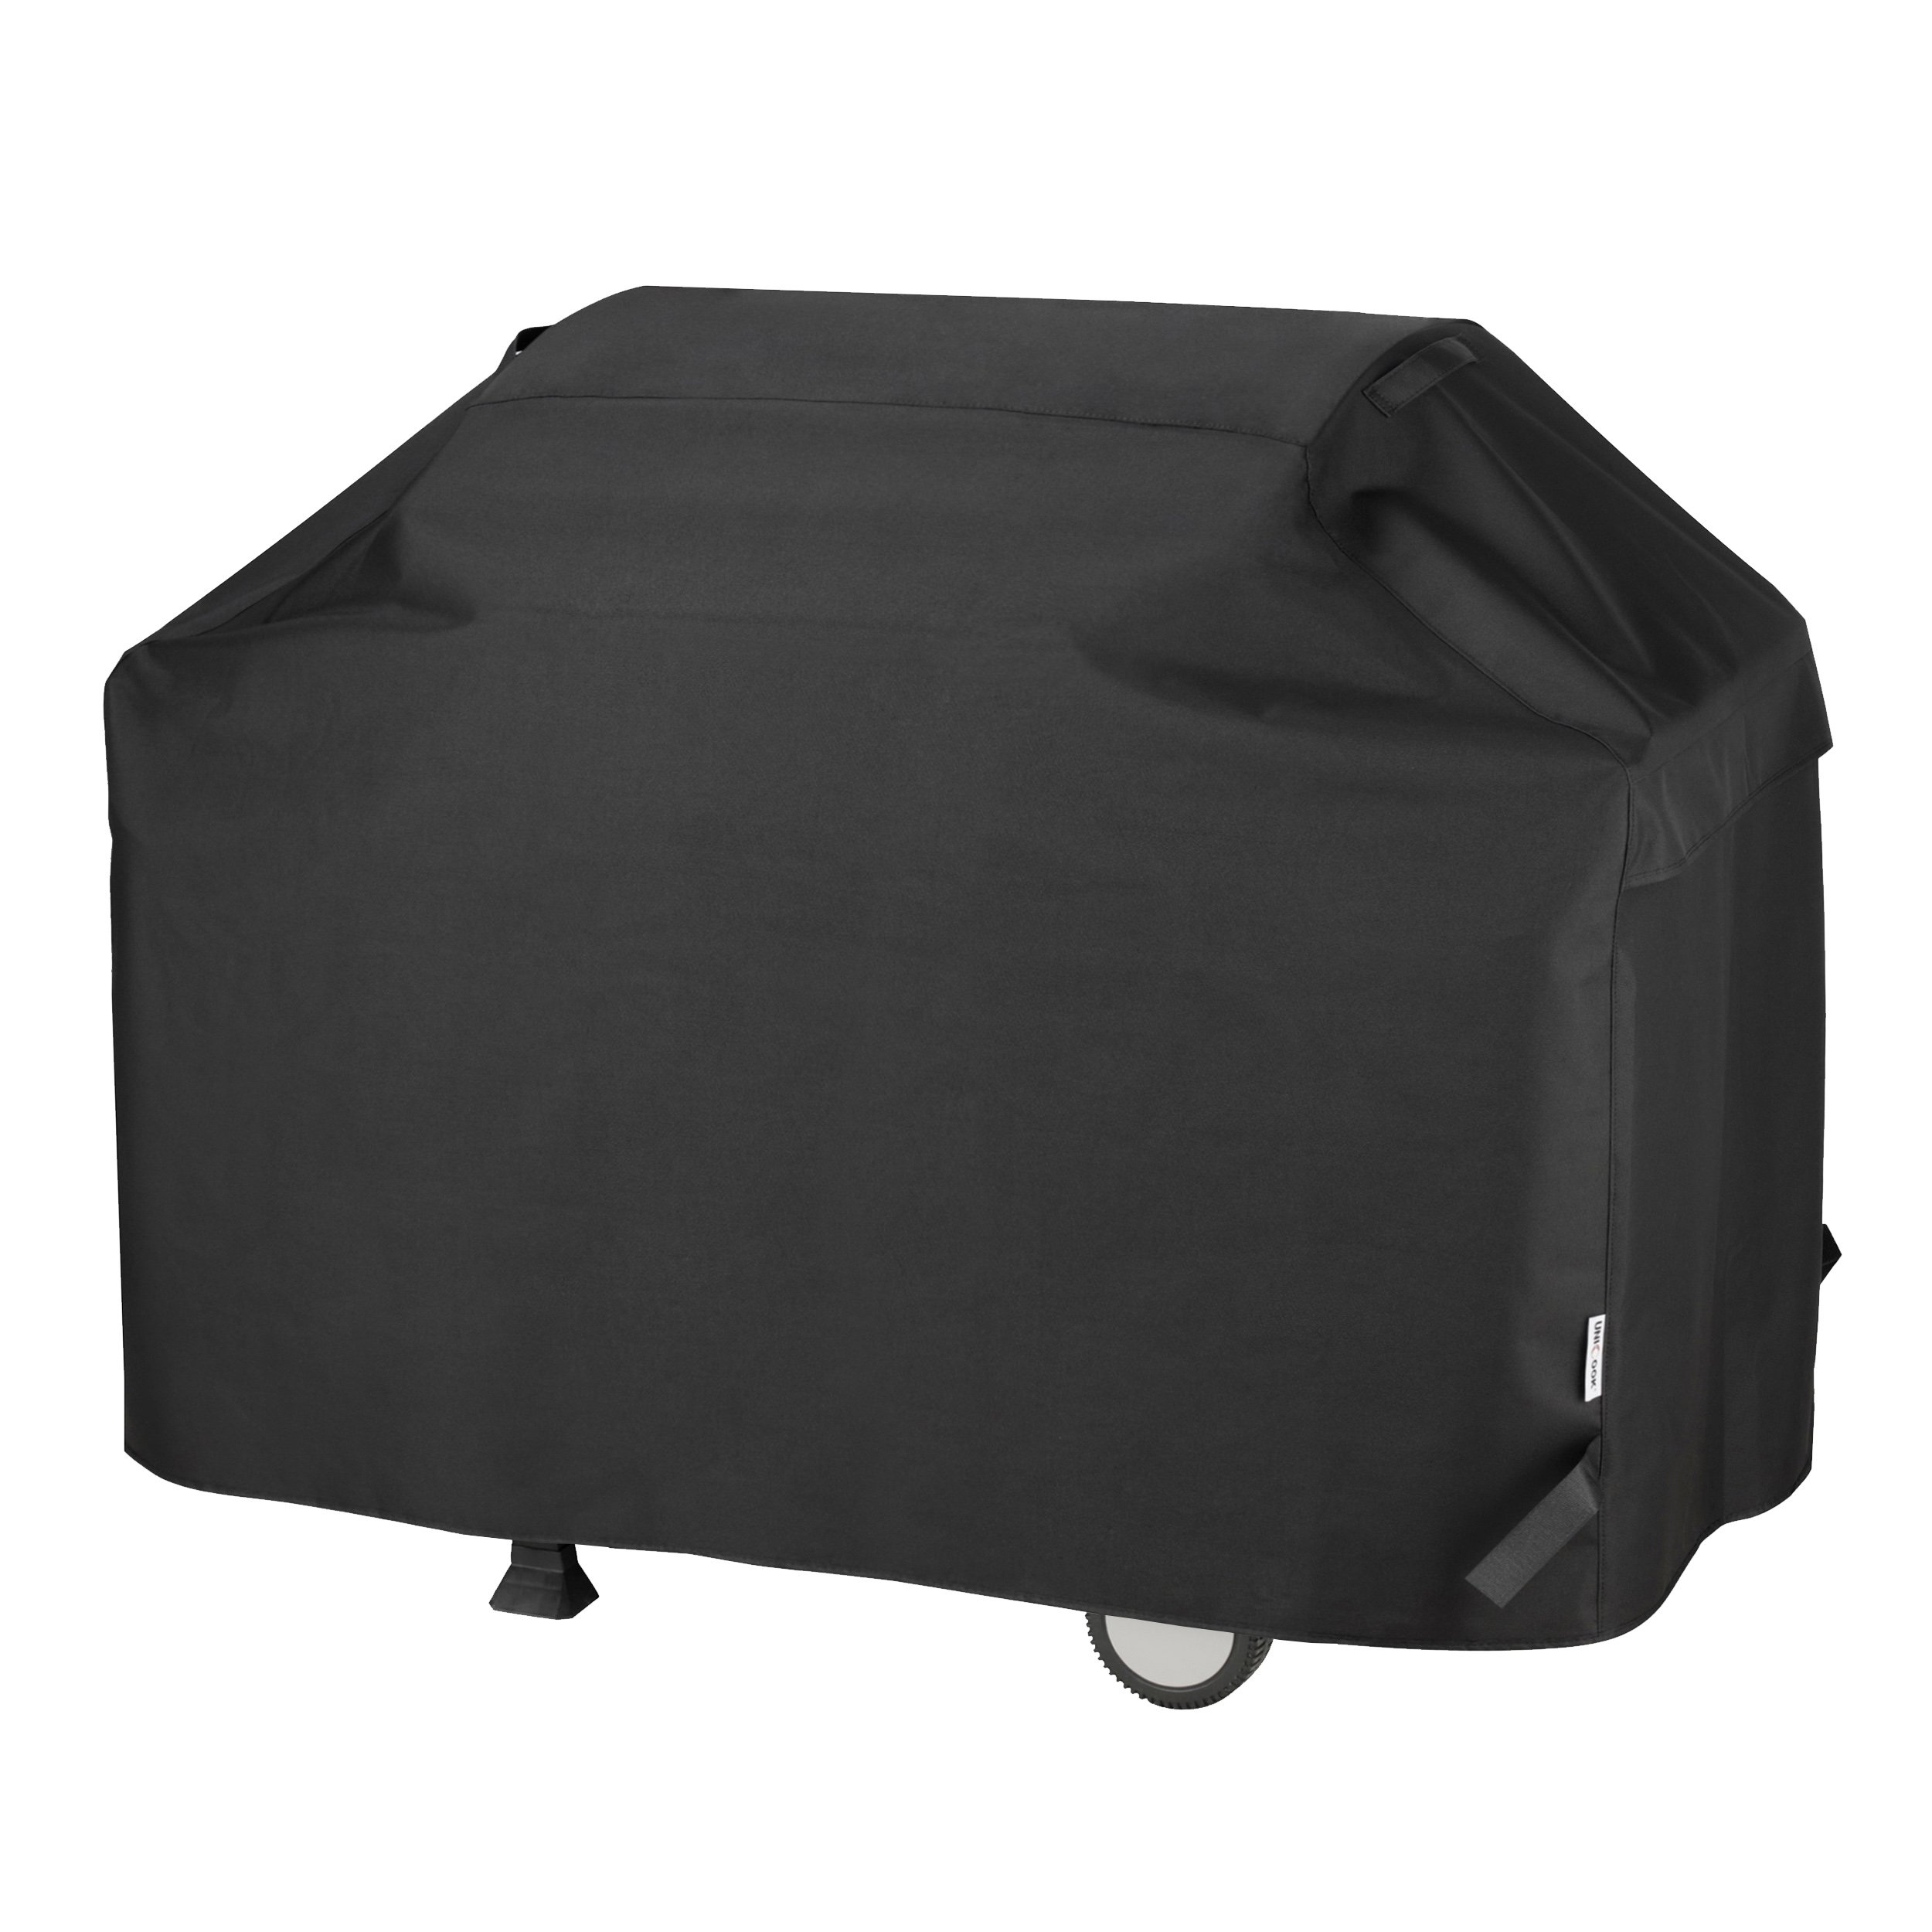 UNICOOK Heavy Duty Waterproof Barbecue Gas Grill Cover, 75-inch XX-Large BBQ Cover, Special Fade and UV Resistant, Durable and Convenient, Fits Grills of Weber Char-Broil Nexgrill Brinkmann and More by UNICOOK